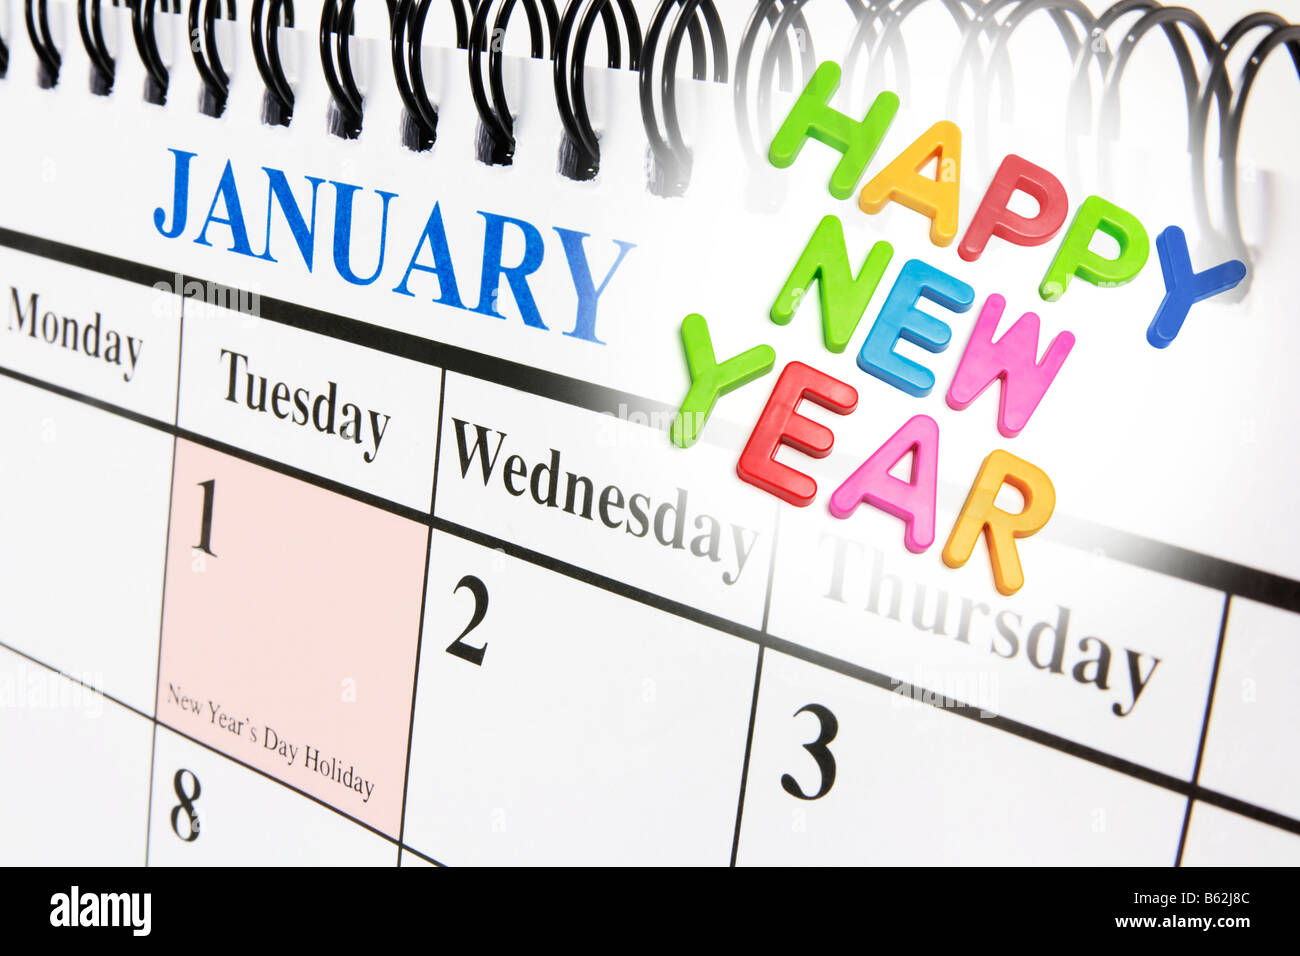 Calendar And New Year Greetings Stock Photo 20956556 Alamy